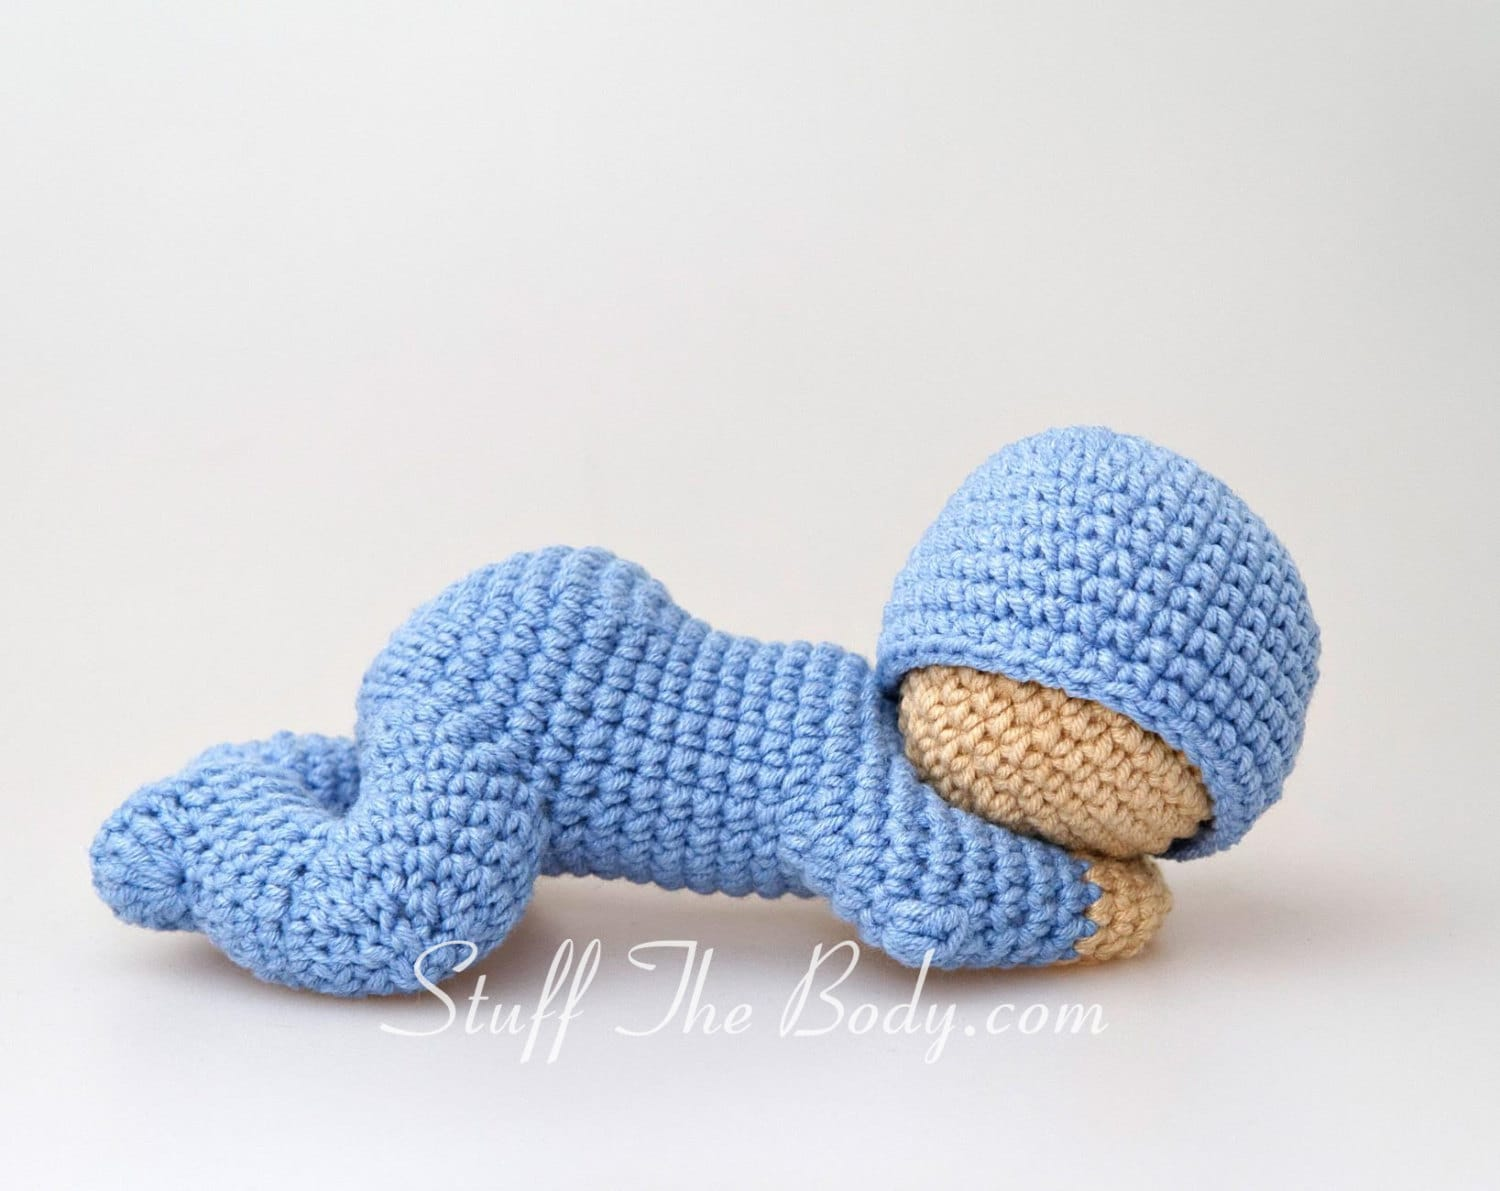 Amigurumi Baby : Sleeping baby amigurumi pattern sleepy doll crochet pattern